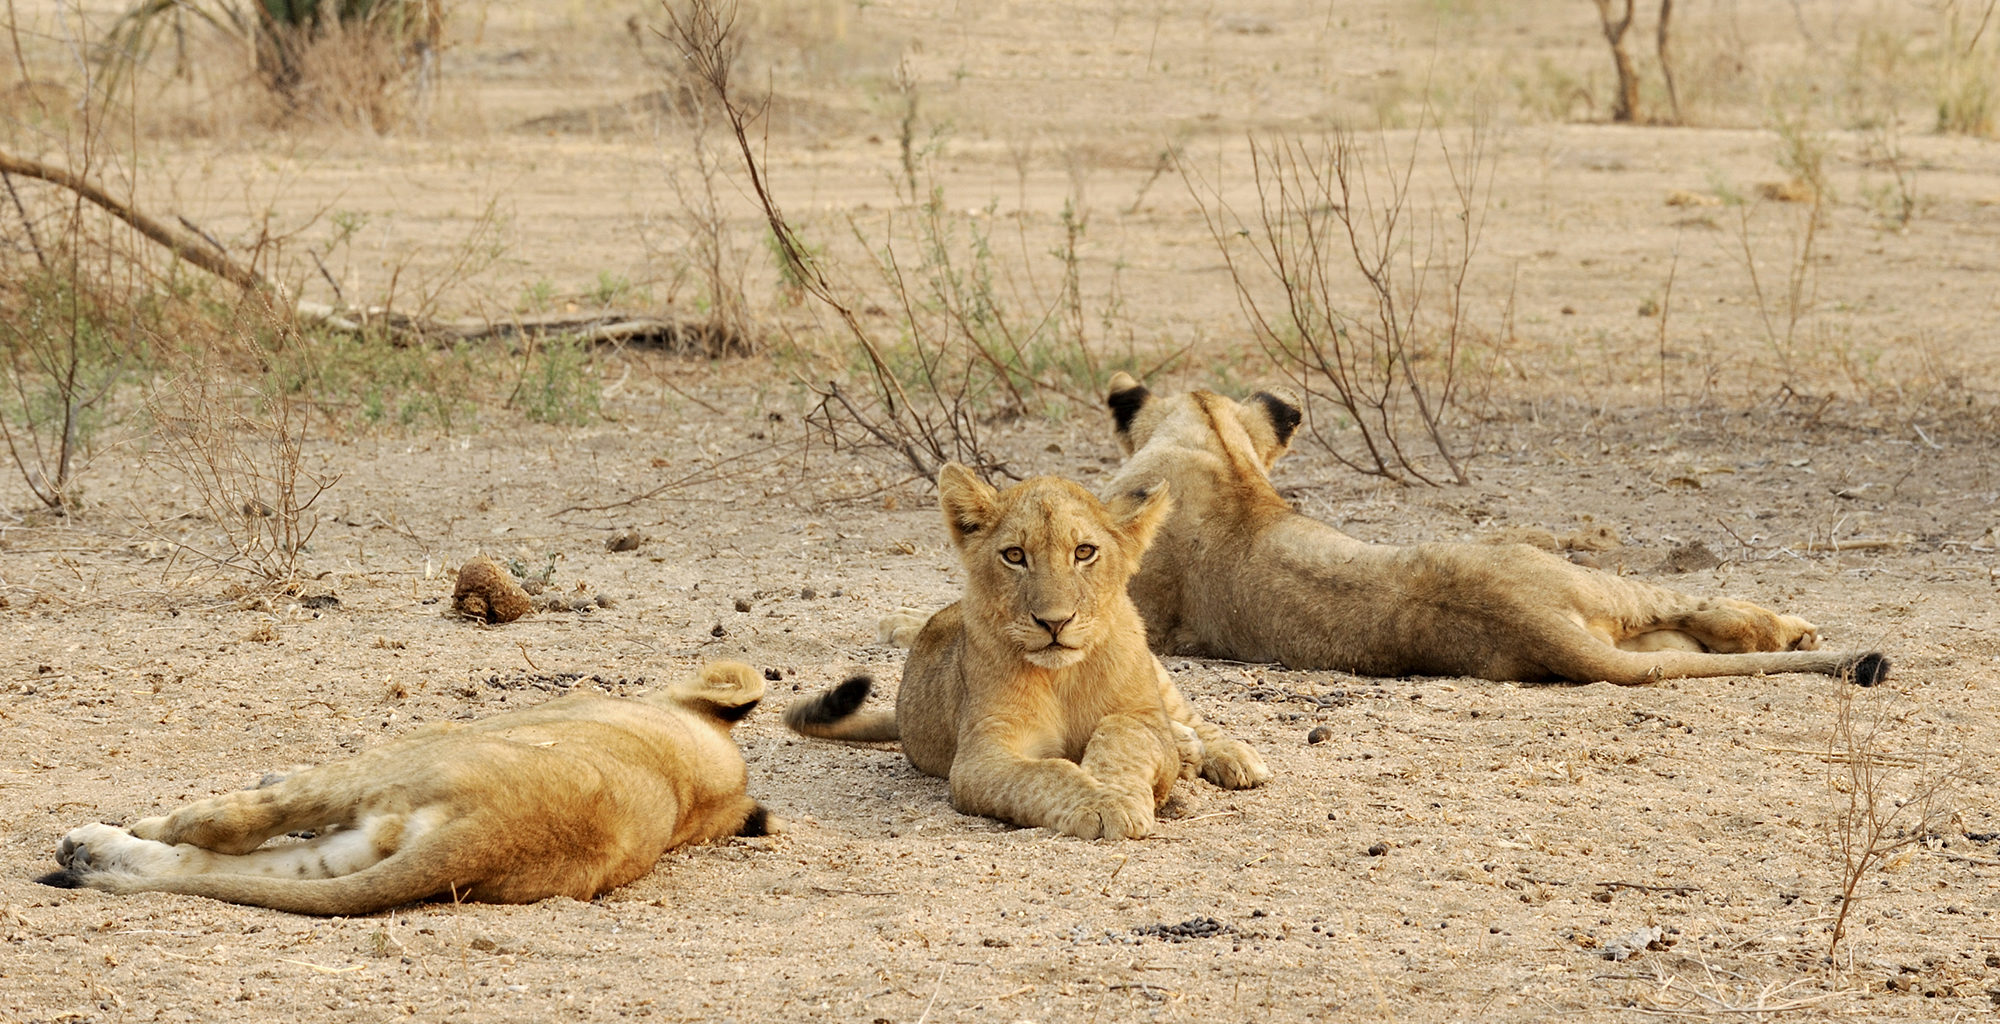 Zambia-Chiawa-Camp-Wildlife-Lion